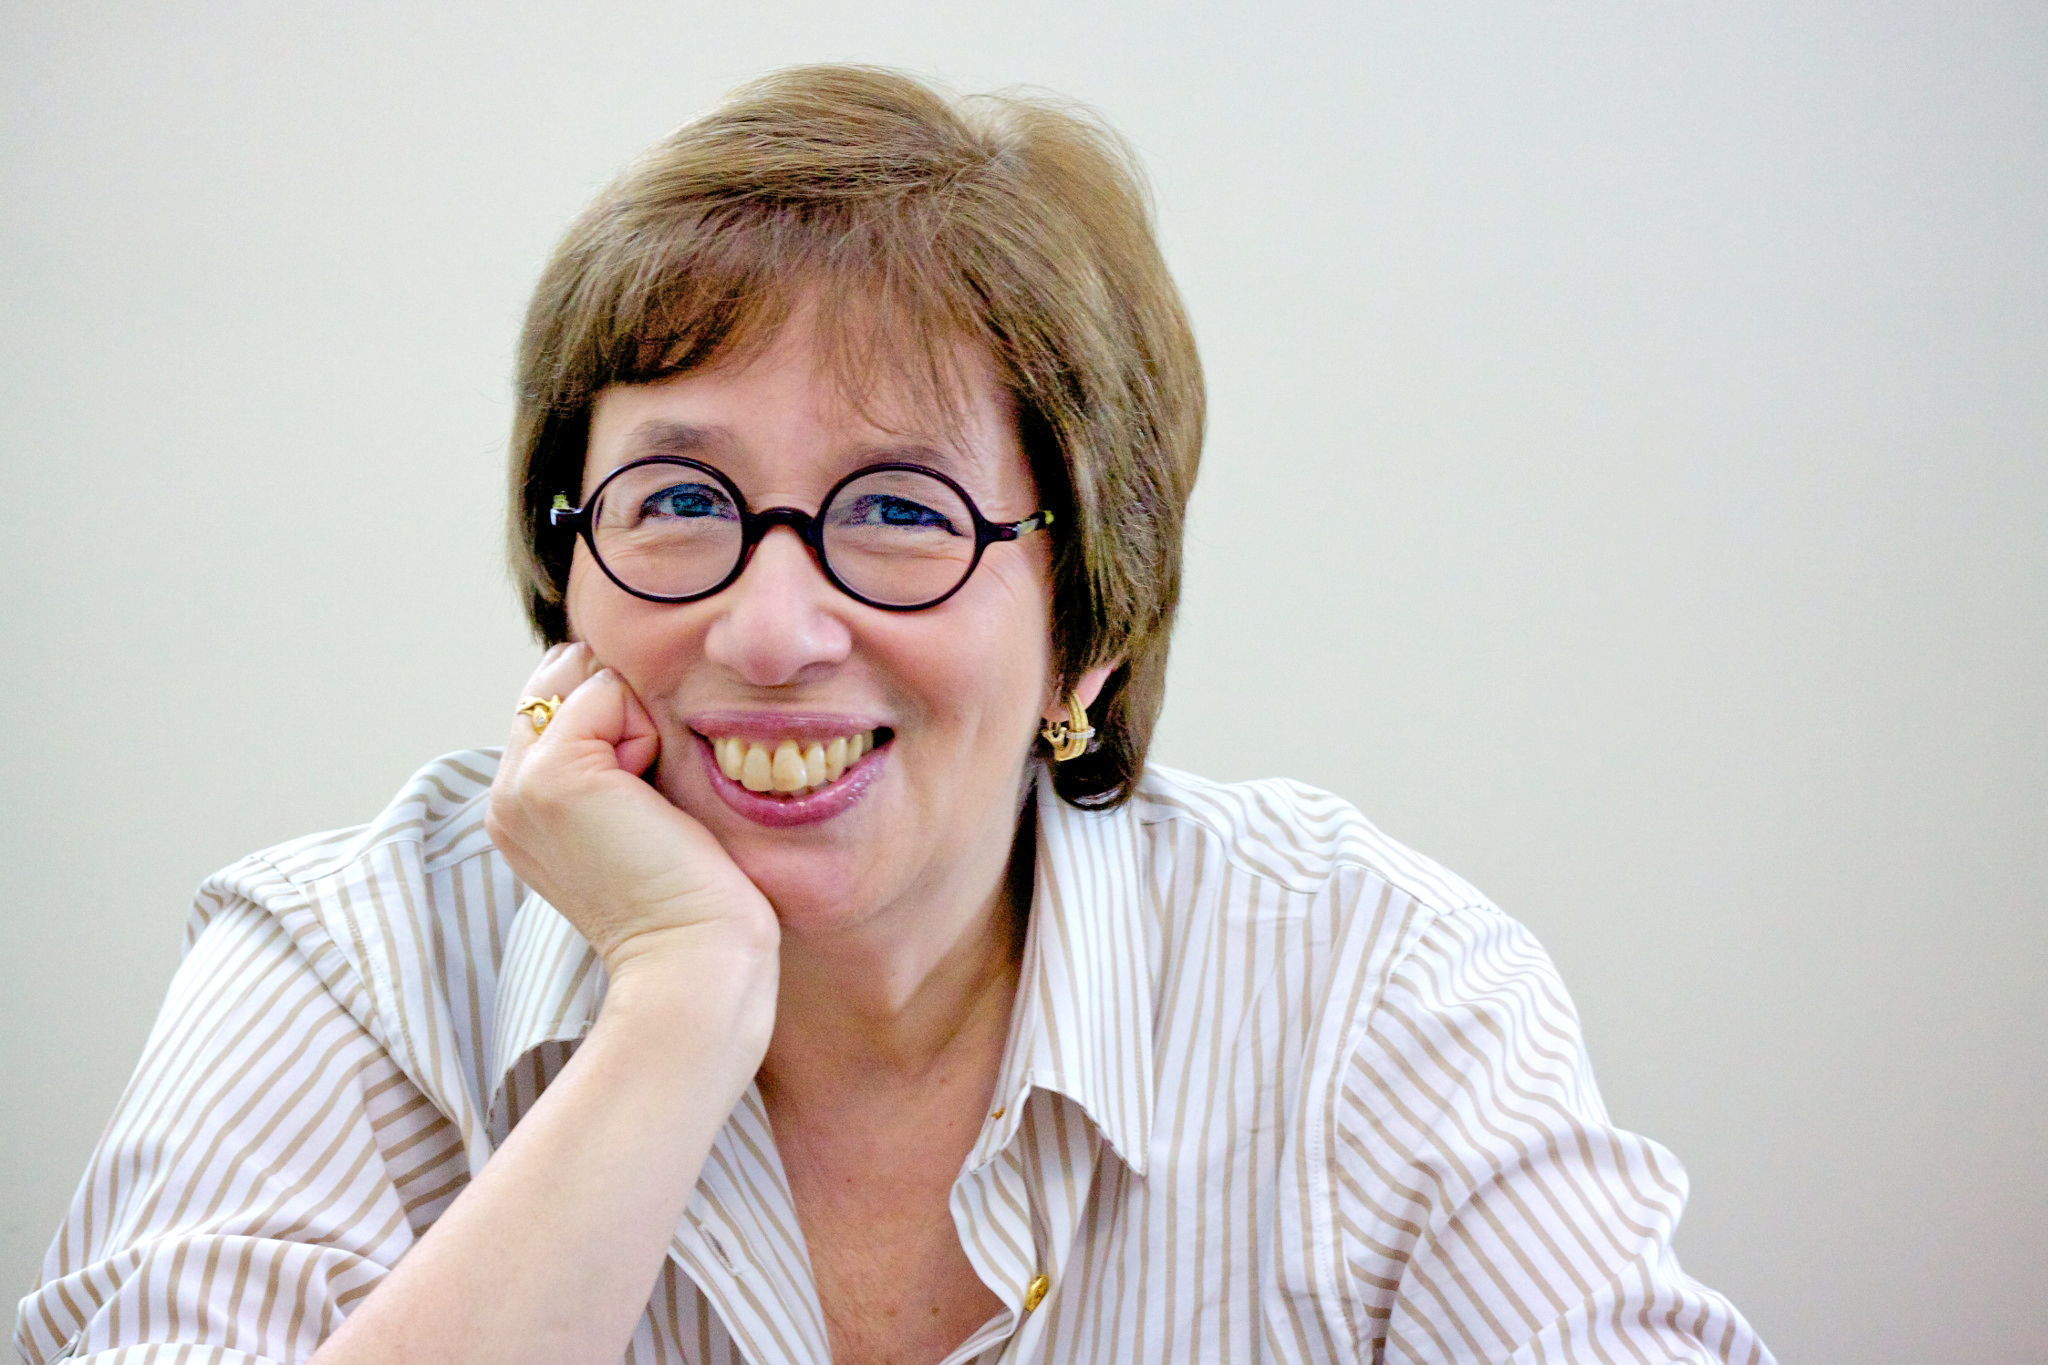 Linda Greenhouse, sitting with chin resting on right palm, wearing round-framed glasses, open-necked striped shirt, smiling.